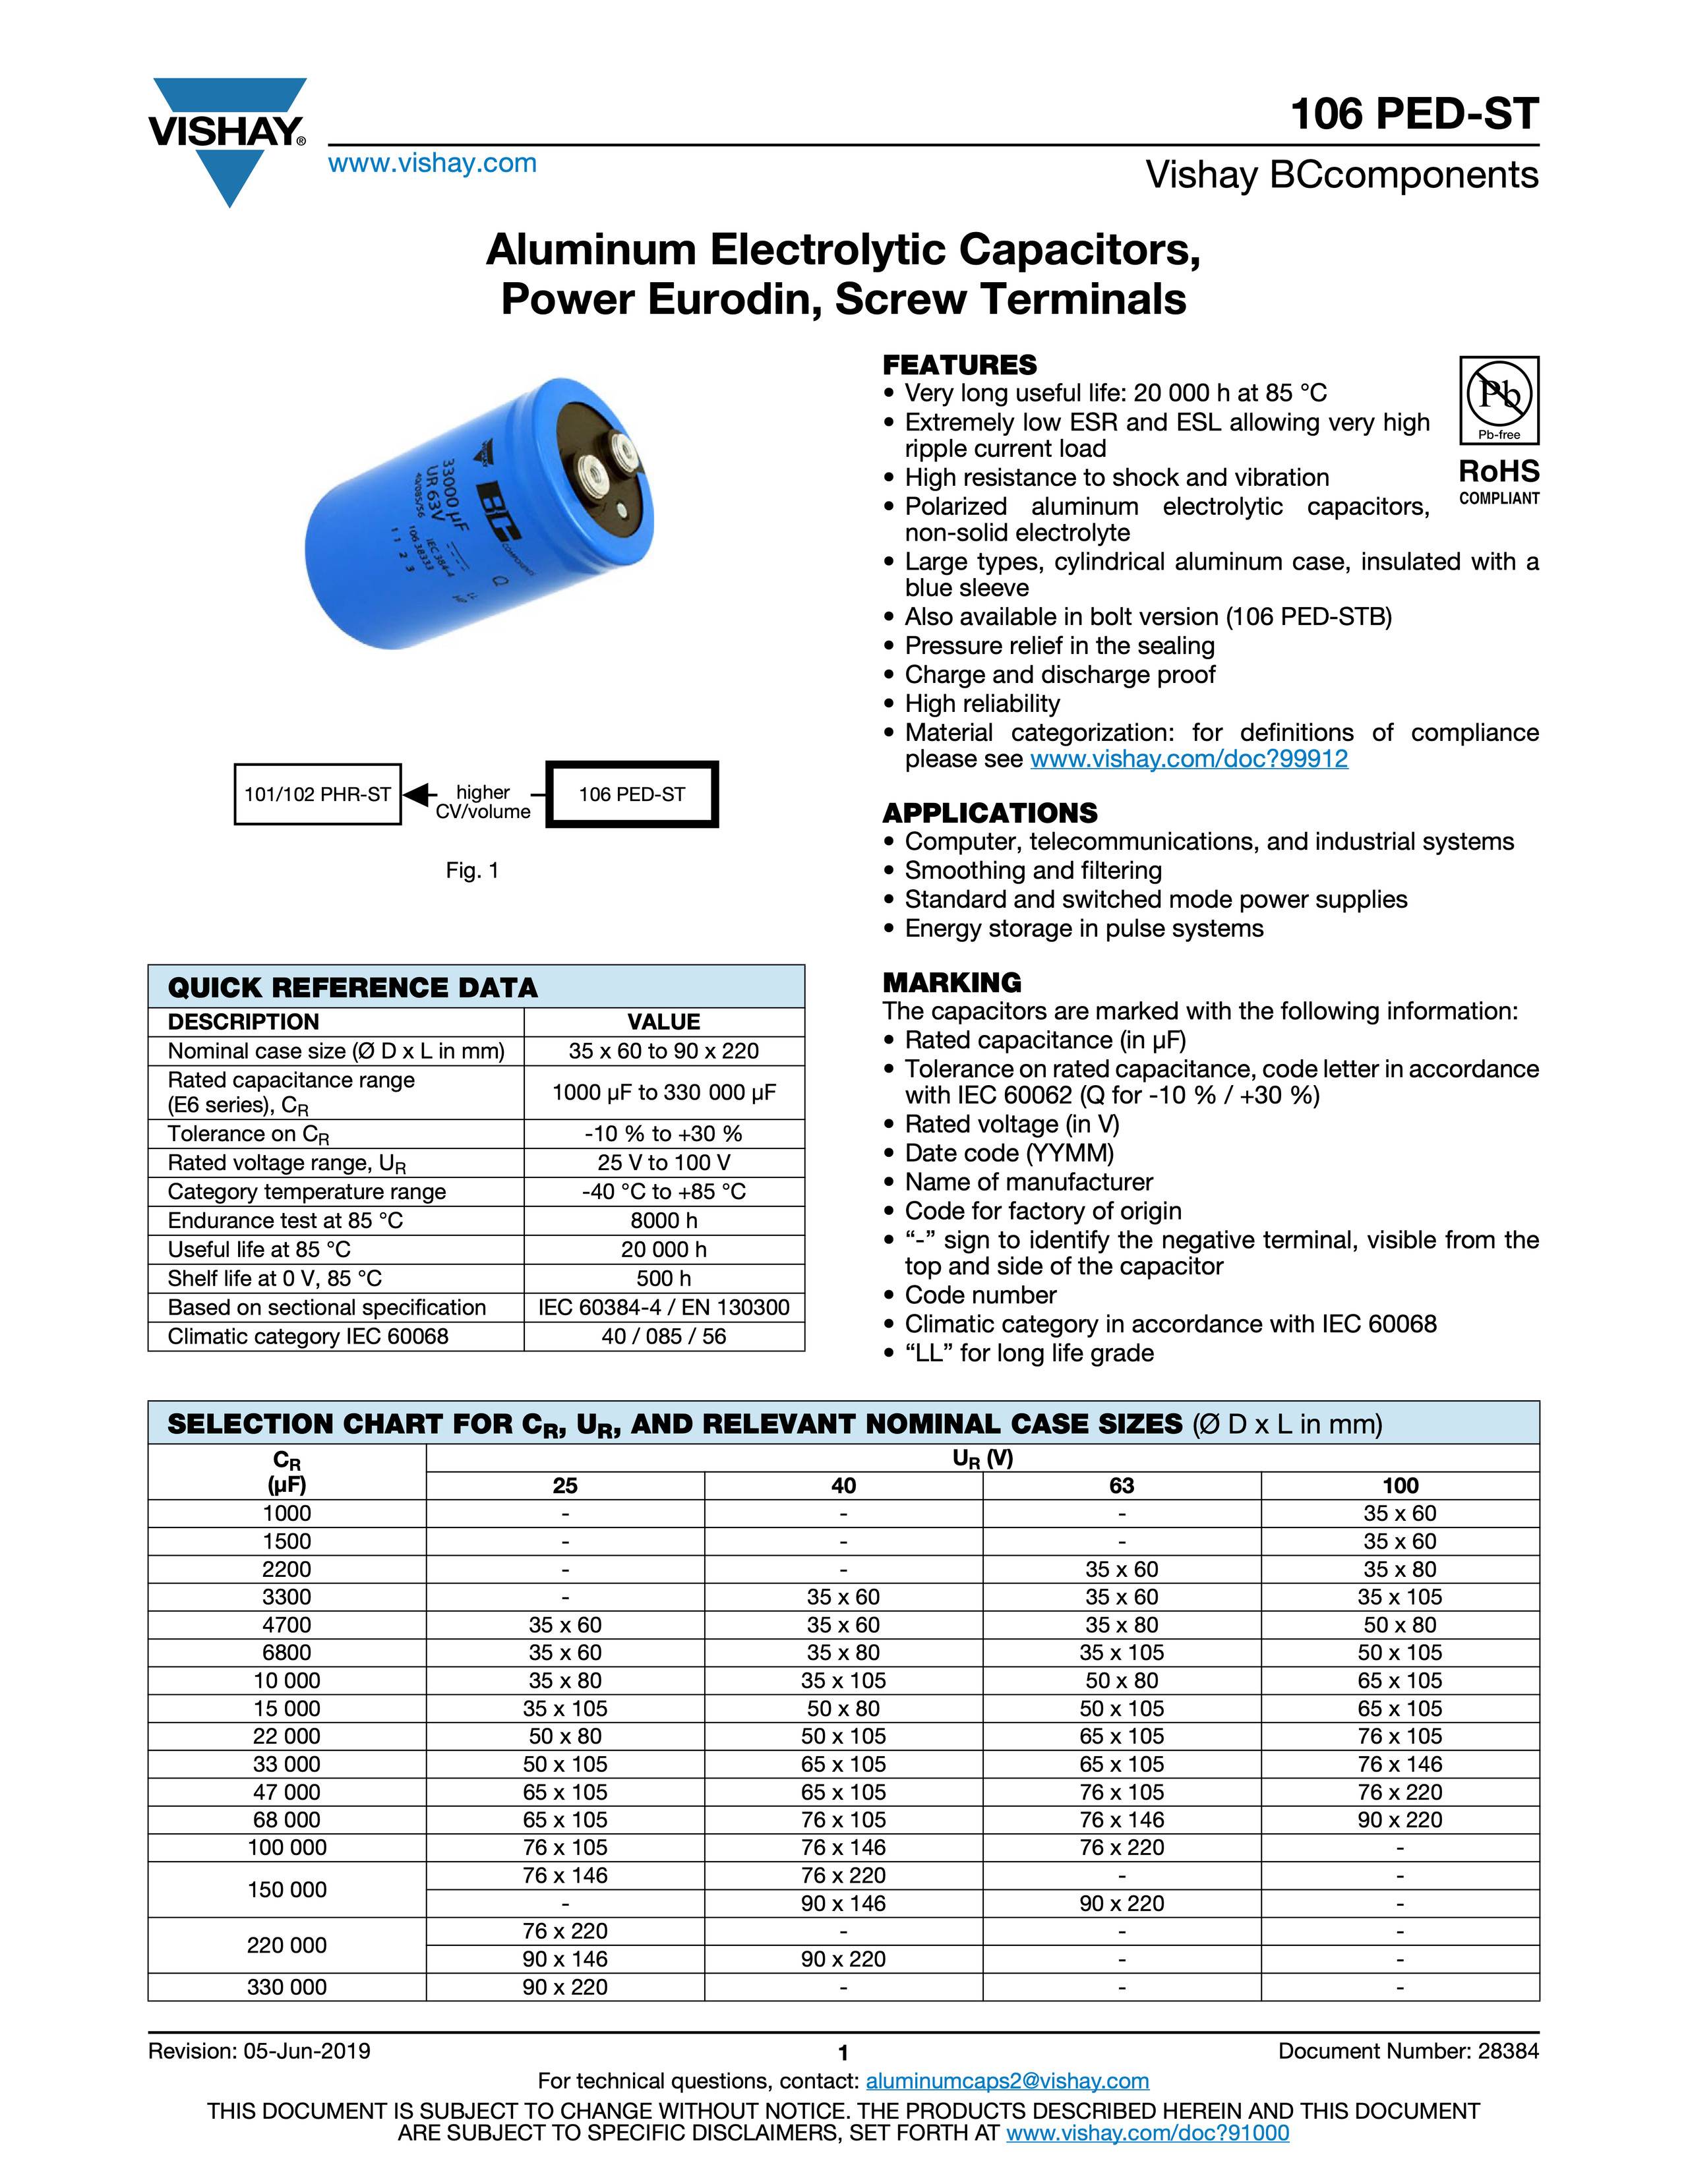 Vishay 106 PED-ST Series Capacitor Data Sheet